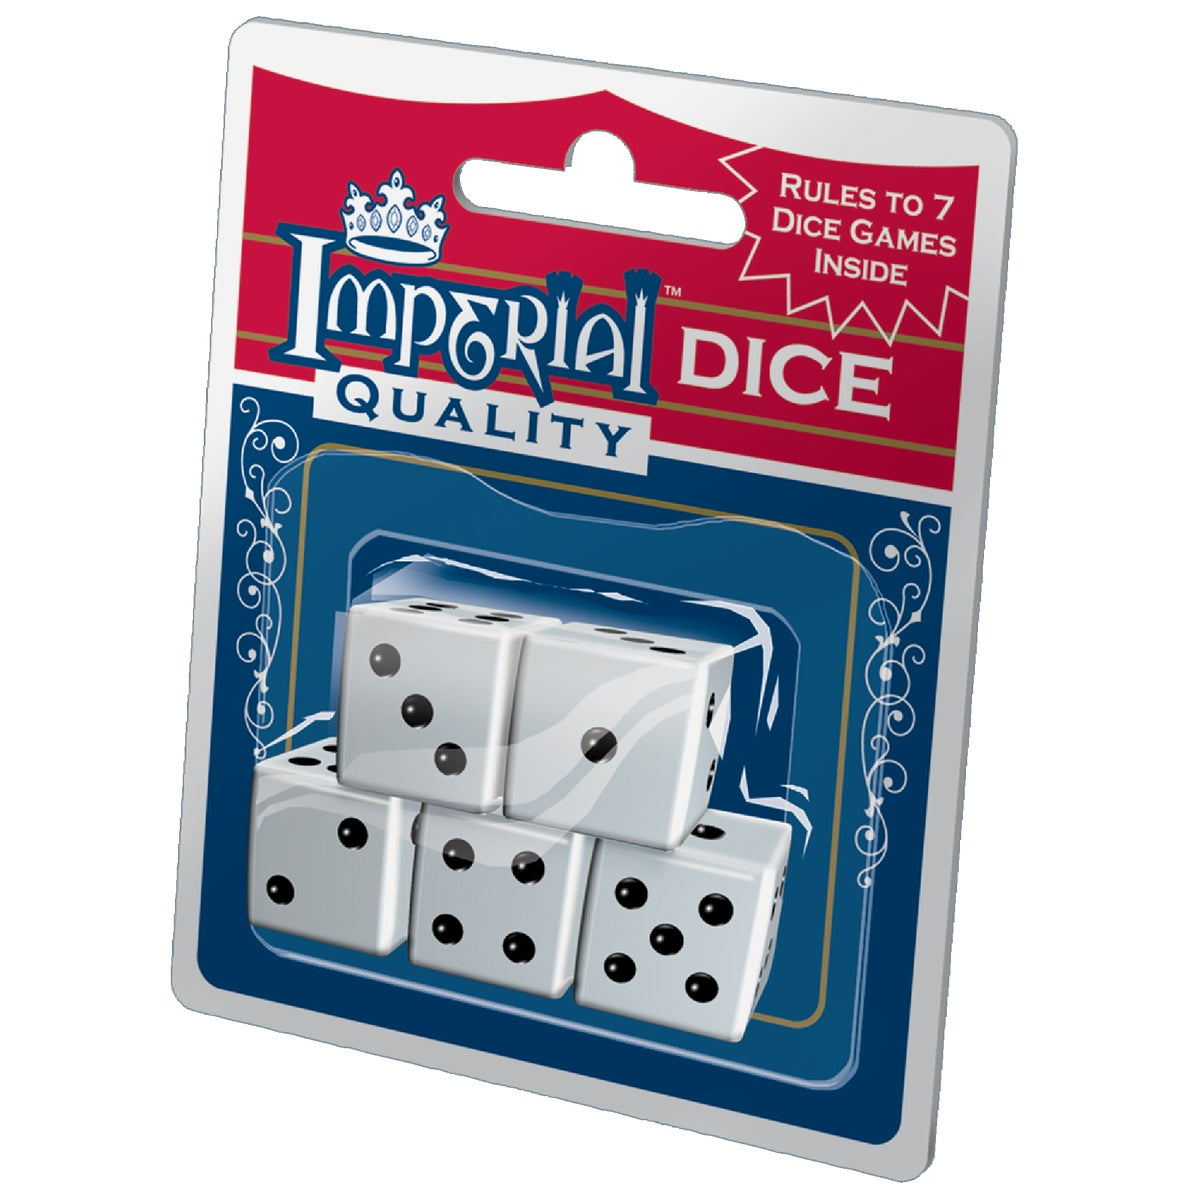 5 PACK DICE - 1454 by Patch Products